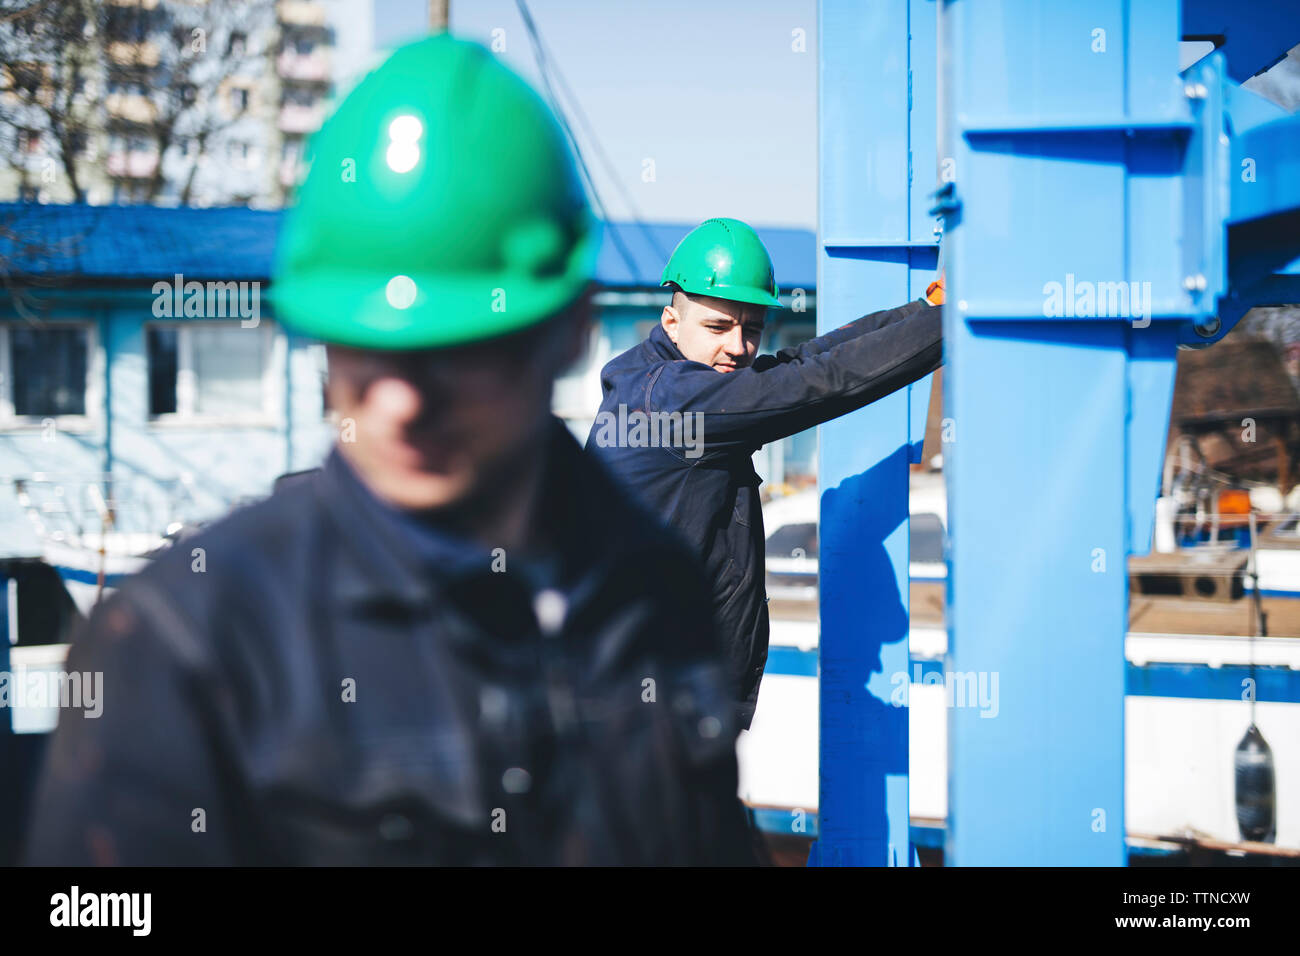 Manual workers working at shipyard during sunny day - Stock Image